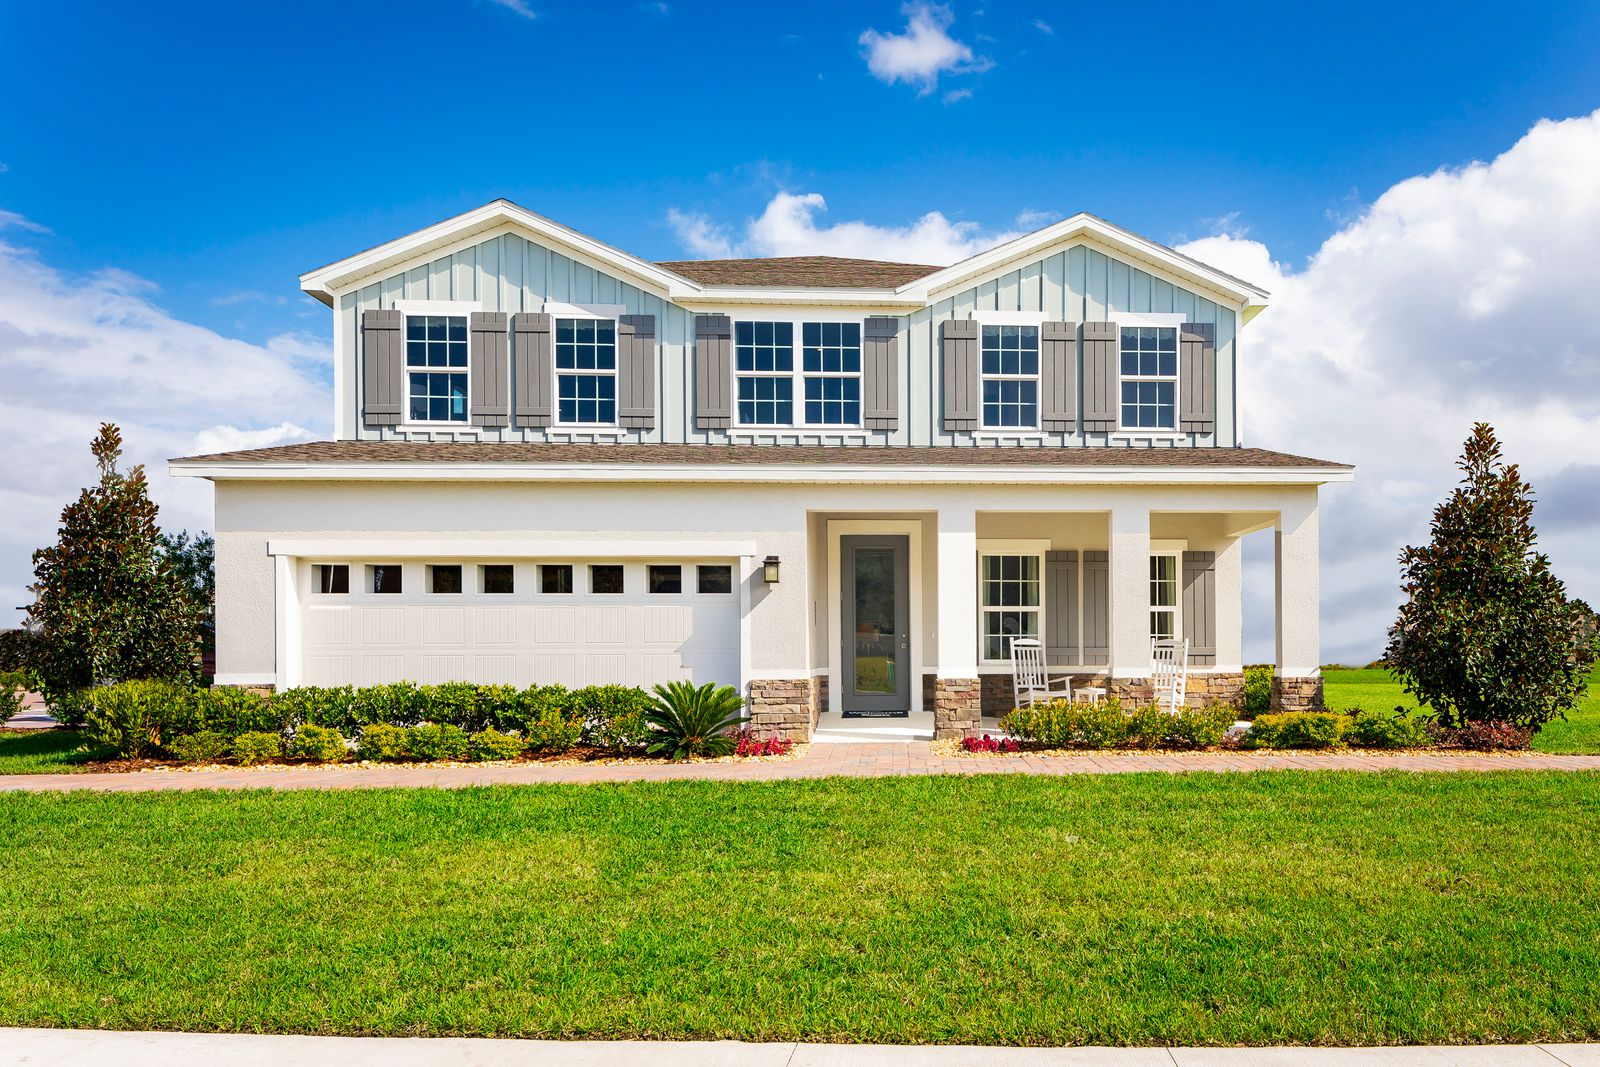 Welcome Home to Summerwoods in Parrish Florida:Summerwoods features a large selection of private homesites with nature views and the easiest, most affordable purchase process in Parrish. An appointment is required to visit,schedule yours today!